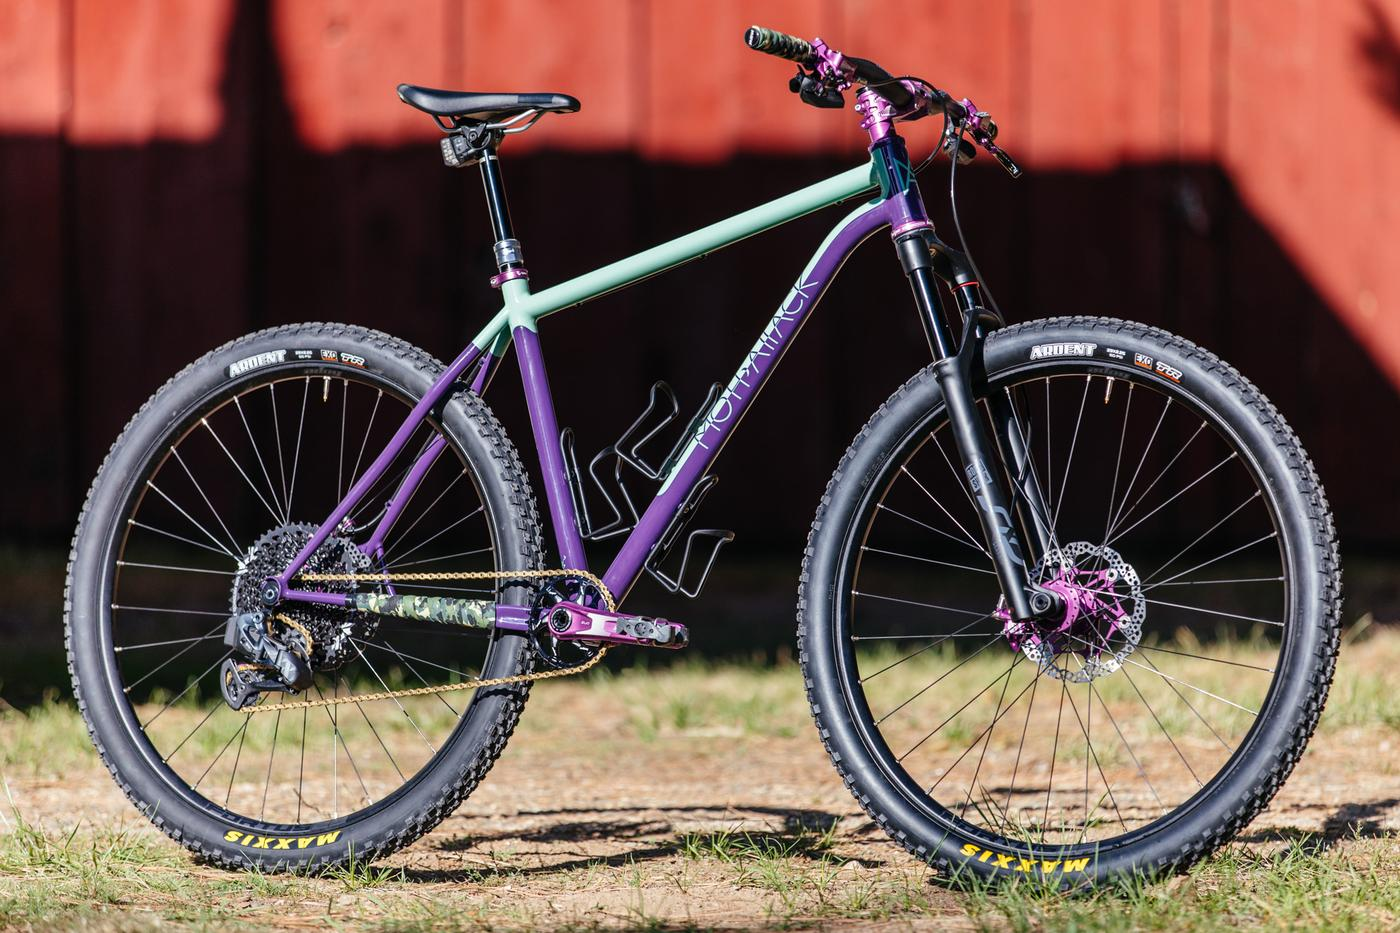 2019 Grinduro: Moth Attack Fillet Brazed MTB